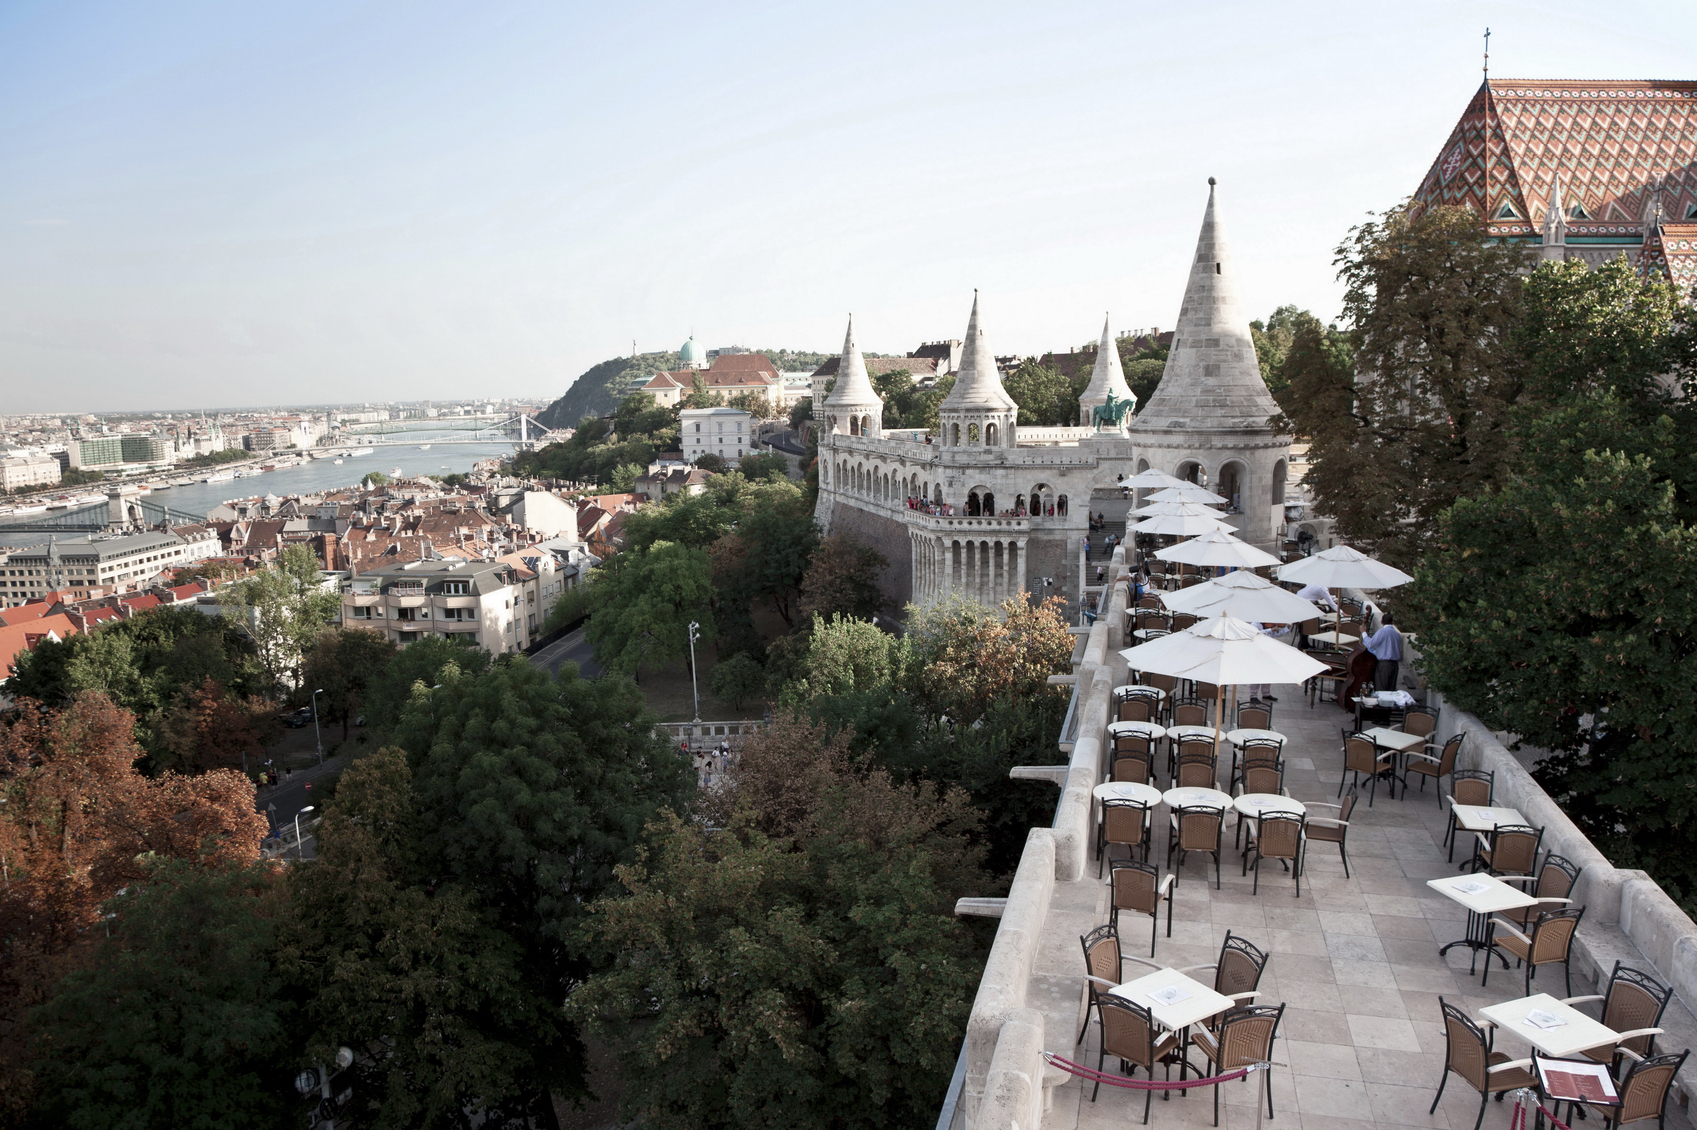 a scene of Budapest from a cafes on Flashermen's bastion at Buda's side